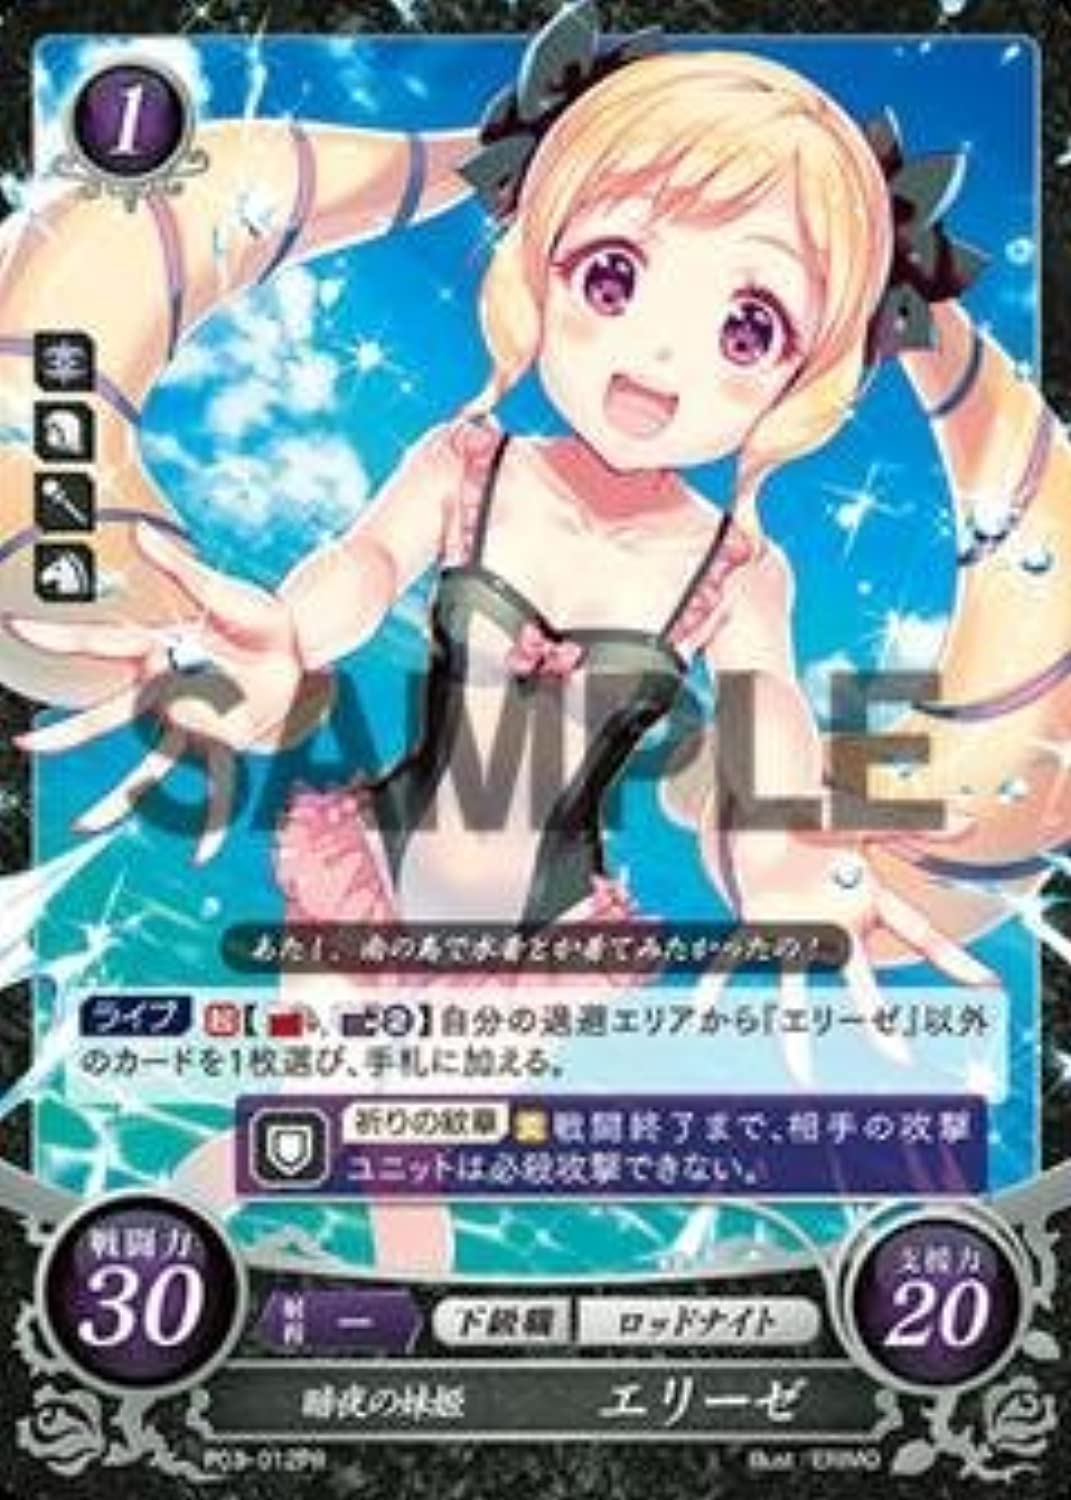 Fire Fire Fire Emblem 0 Cipher Card Game PromoThe Younger Sister